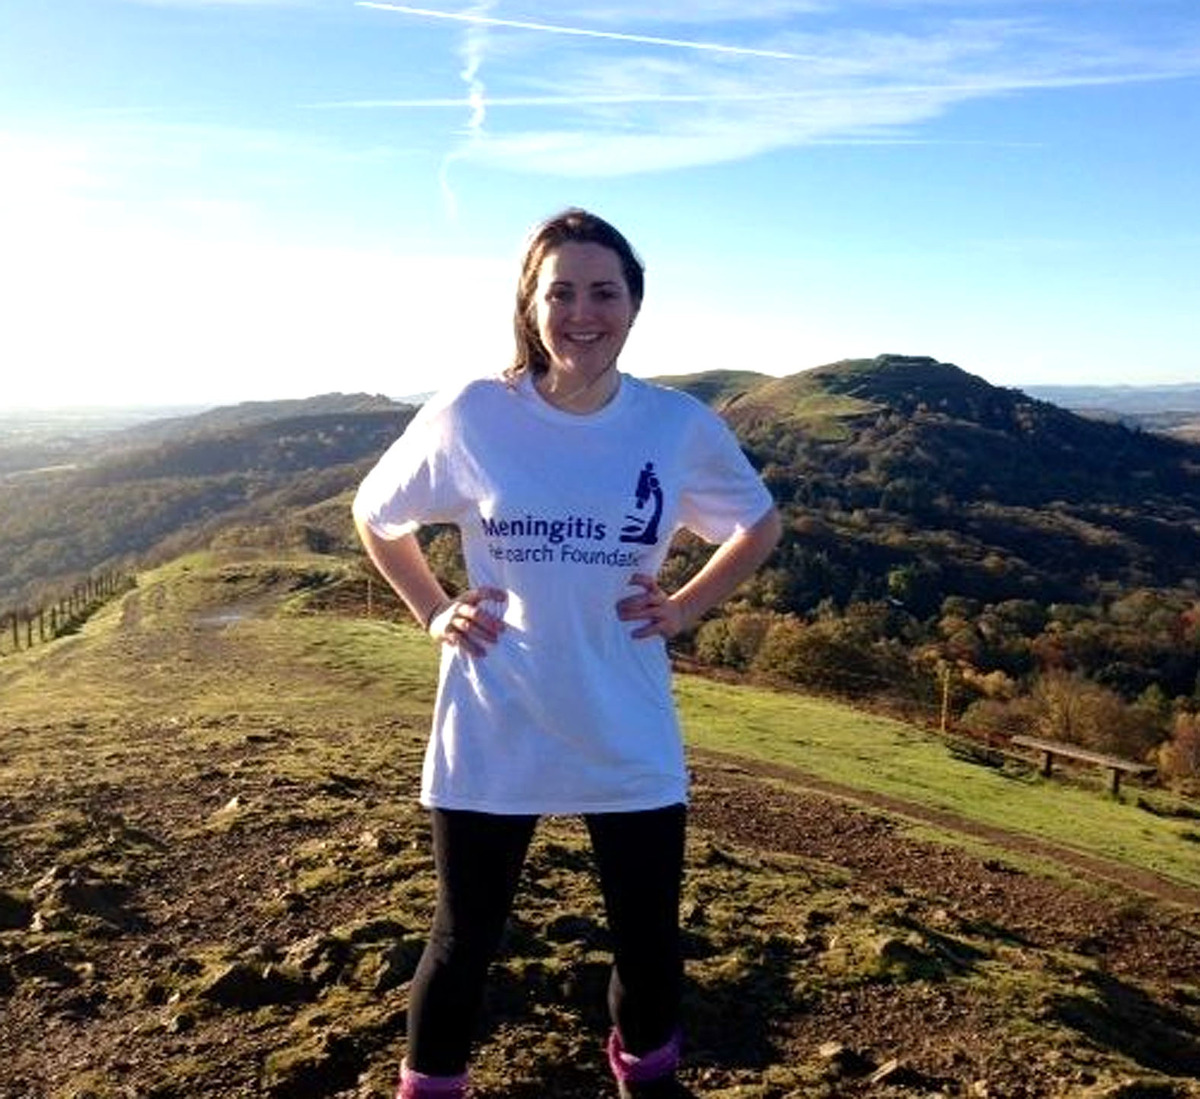 TREKKING: Student Cathering Okey is set to tackle terrain more challenging than the Malvern Hills in aid of meningitis research.